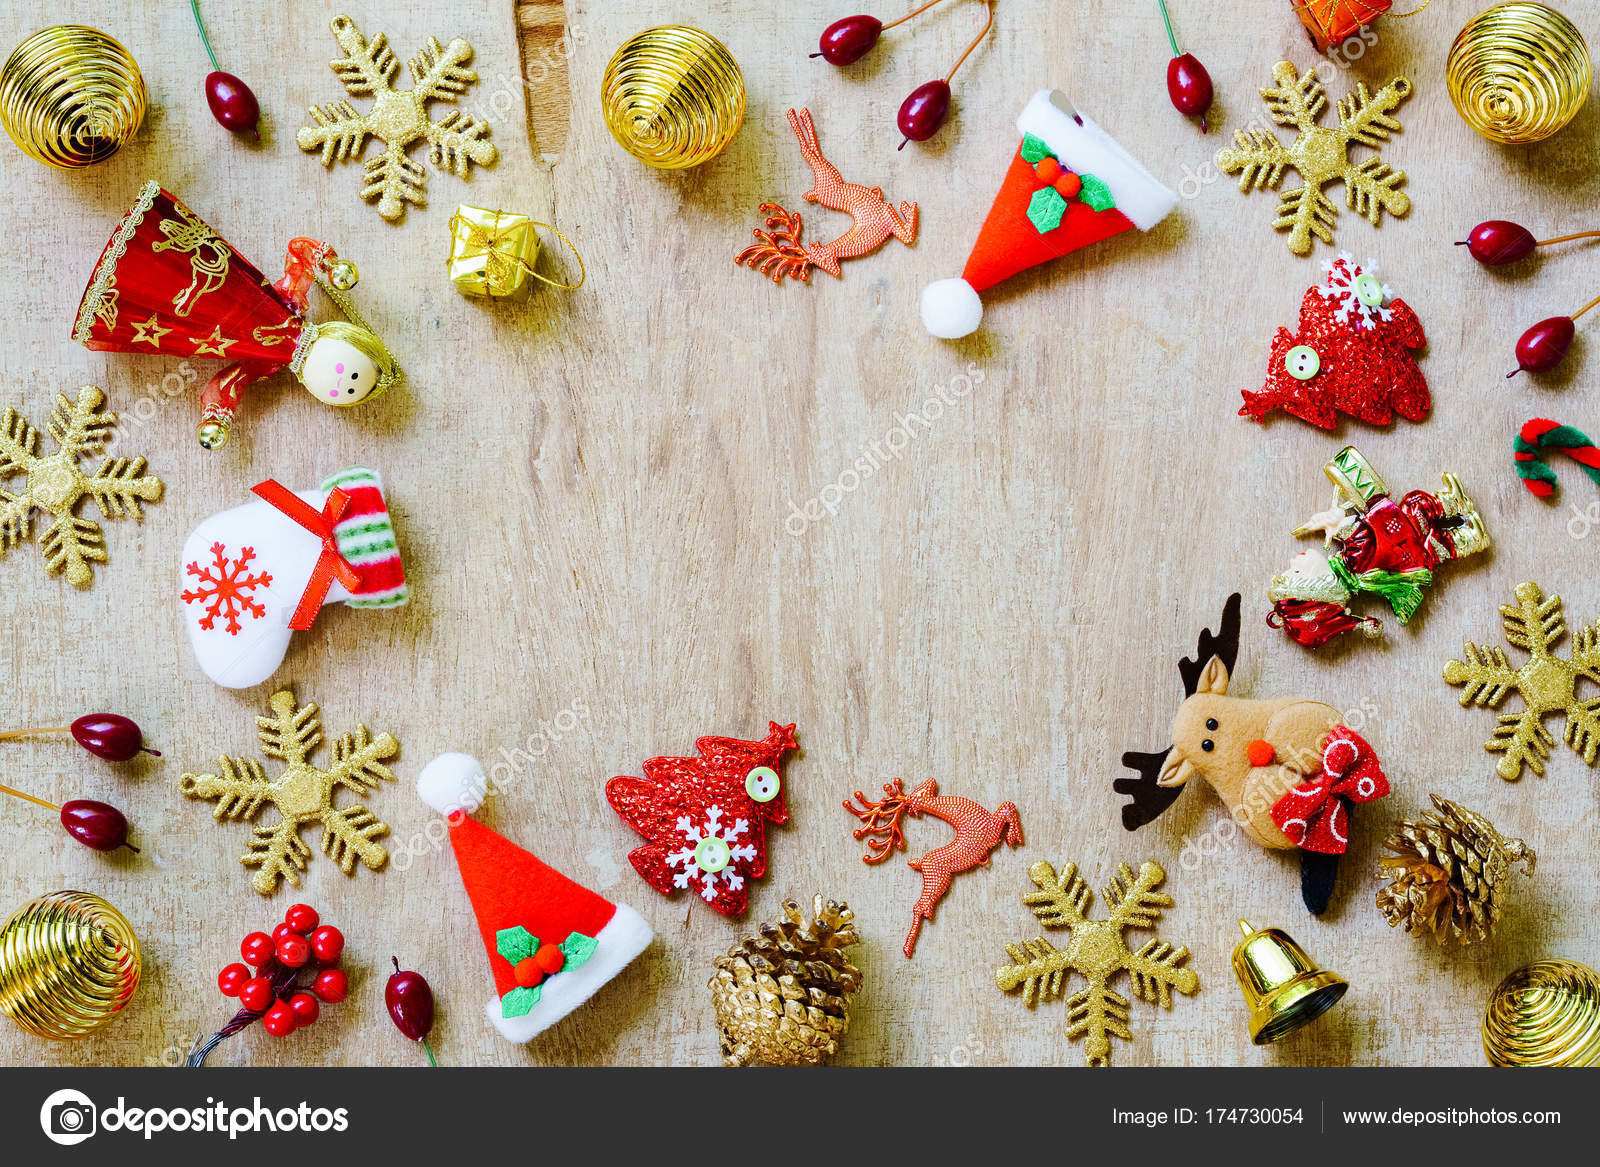 merry christmas and happy new year background concept various christmas decoration items on wood background photo by ezthaiphoto